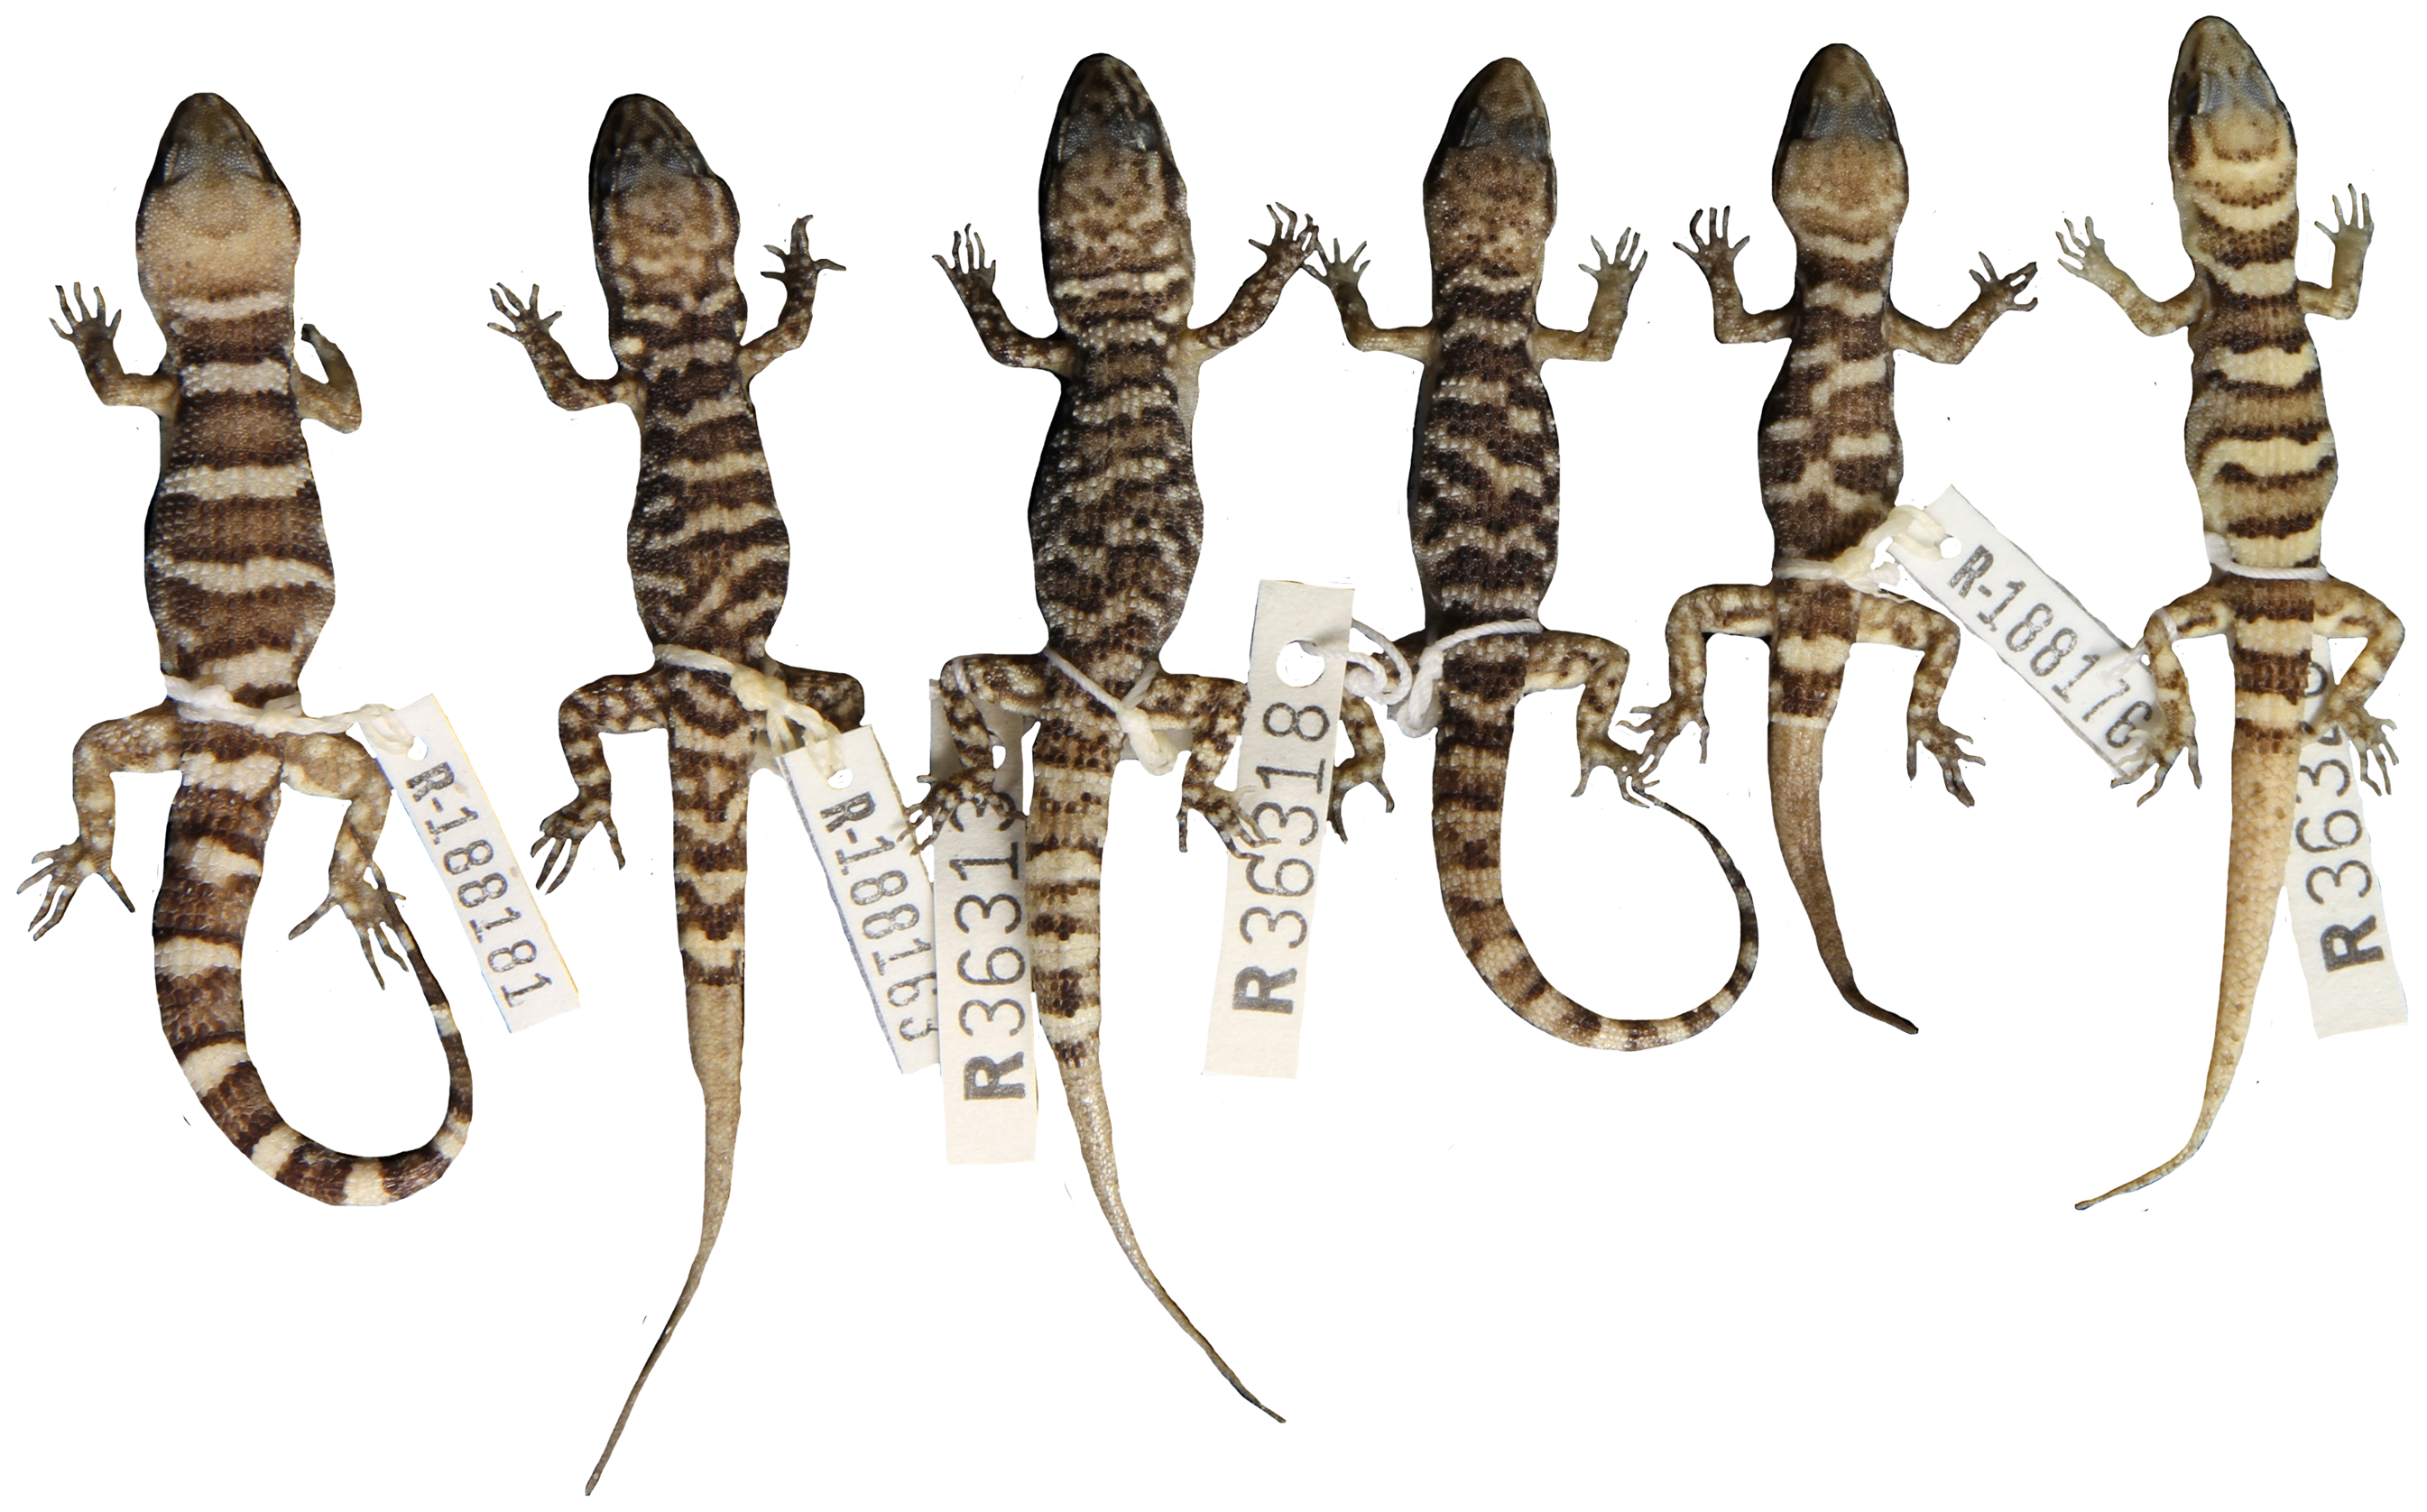 Whiptail lizards asexual reproduction advantages